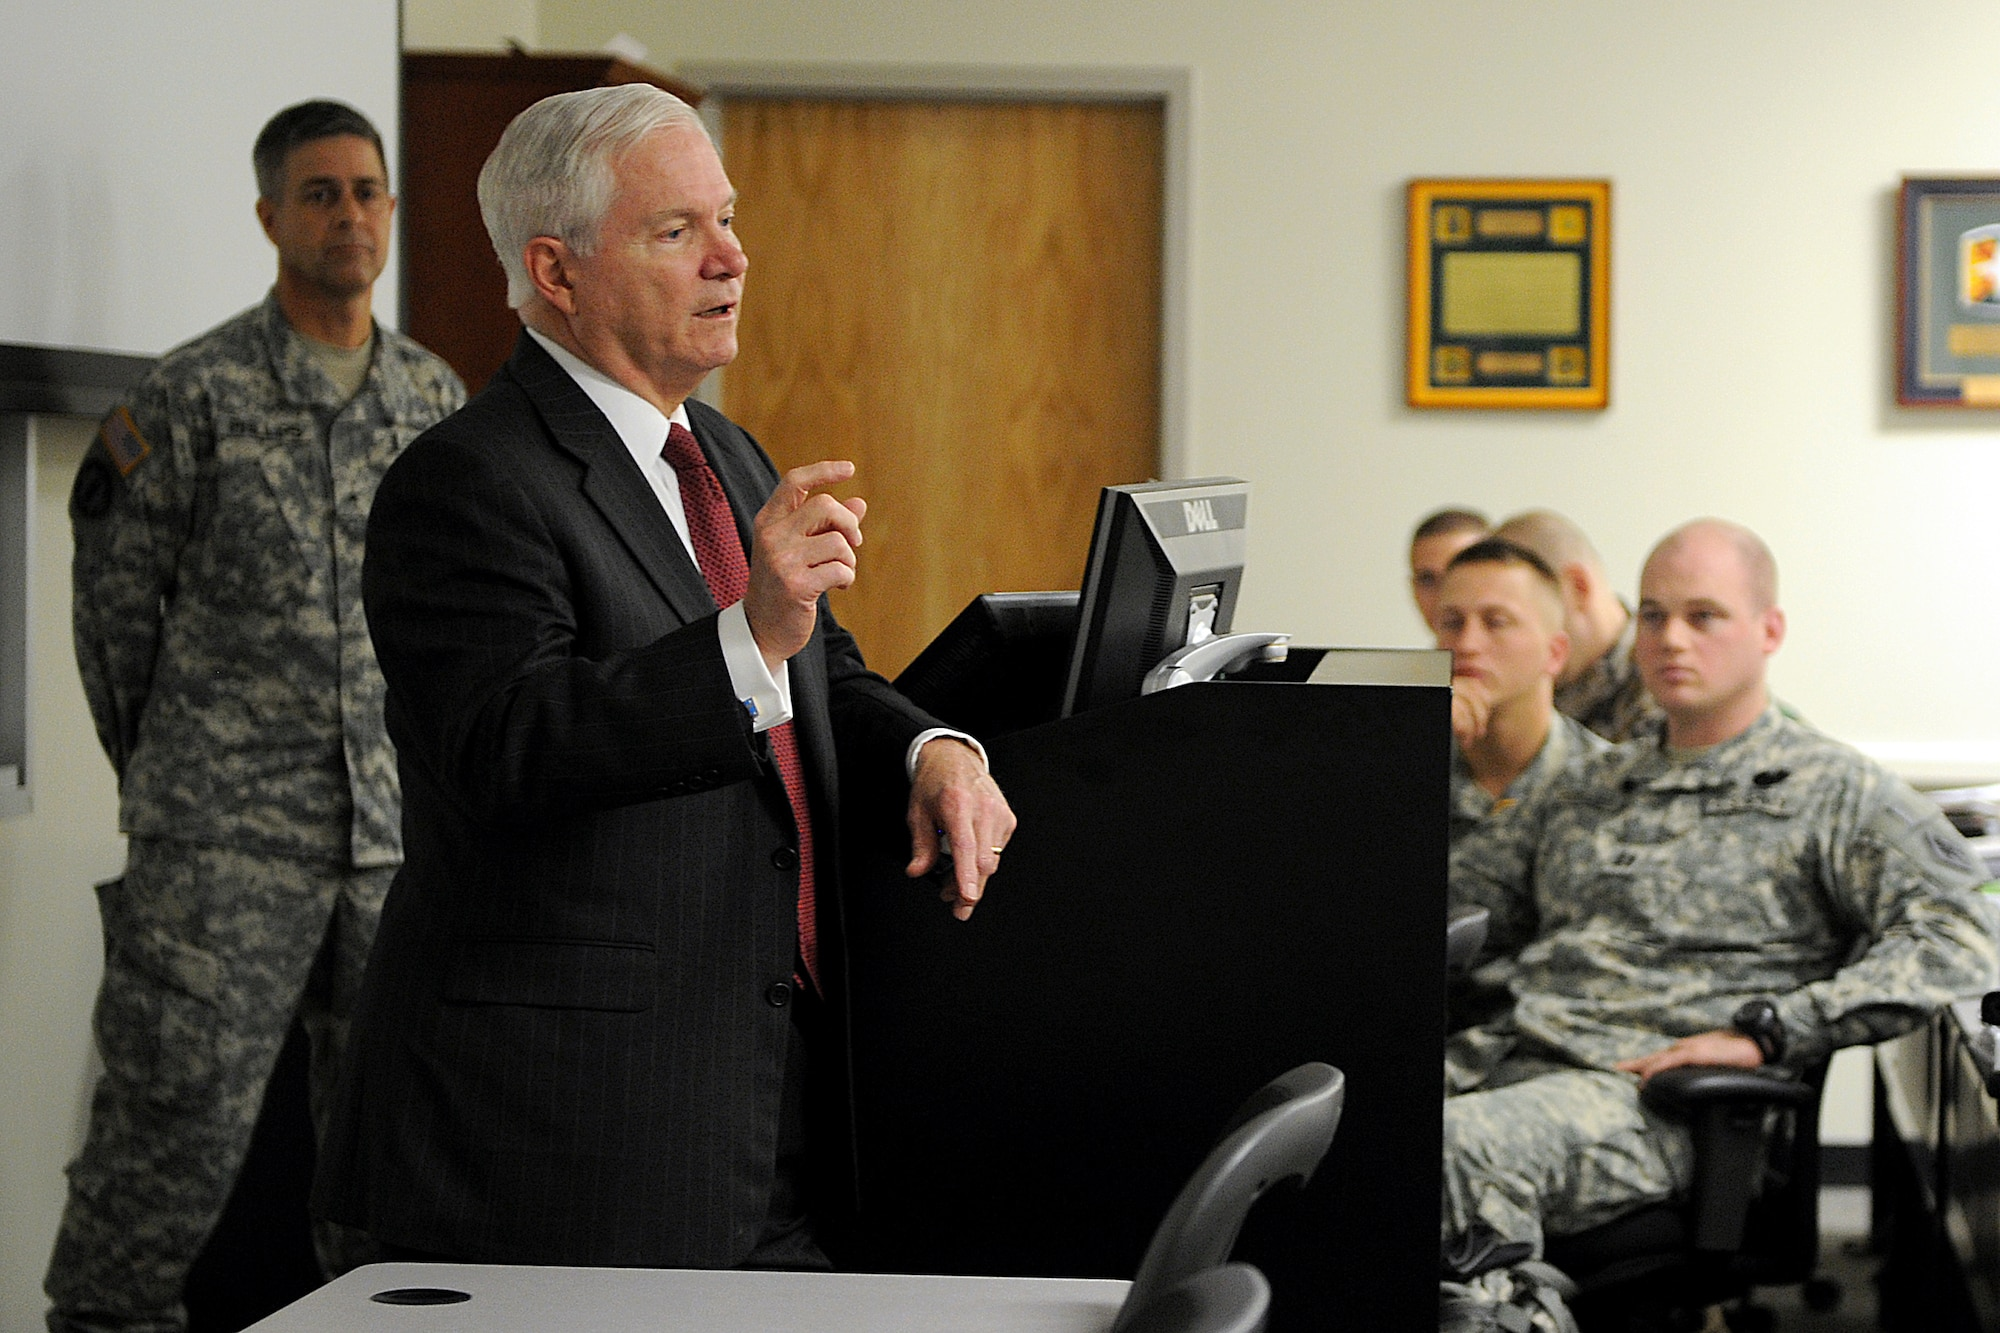 Defense Secretary Robert M. Gates speaks with students at Ft. Leonard Wood, Mo.,  May 19, 2011.  (Defense Department photo/Cherie Cullen)